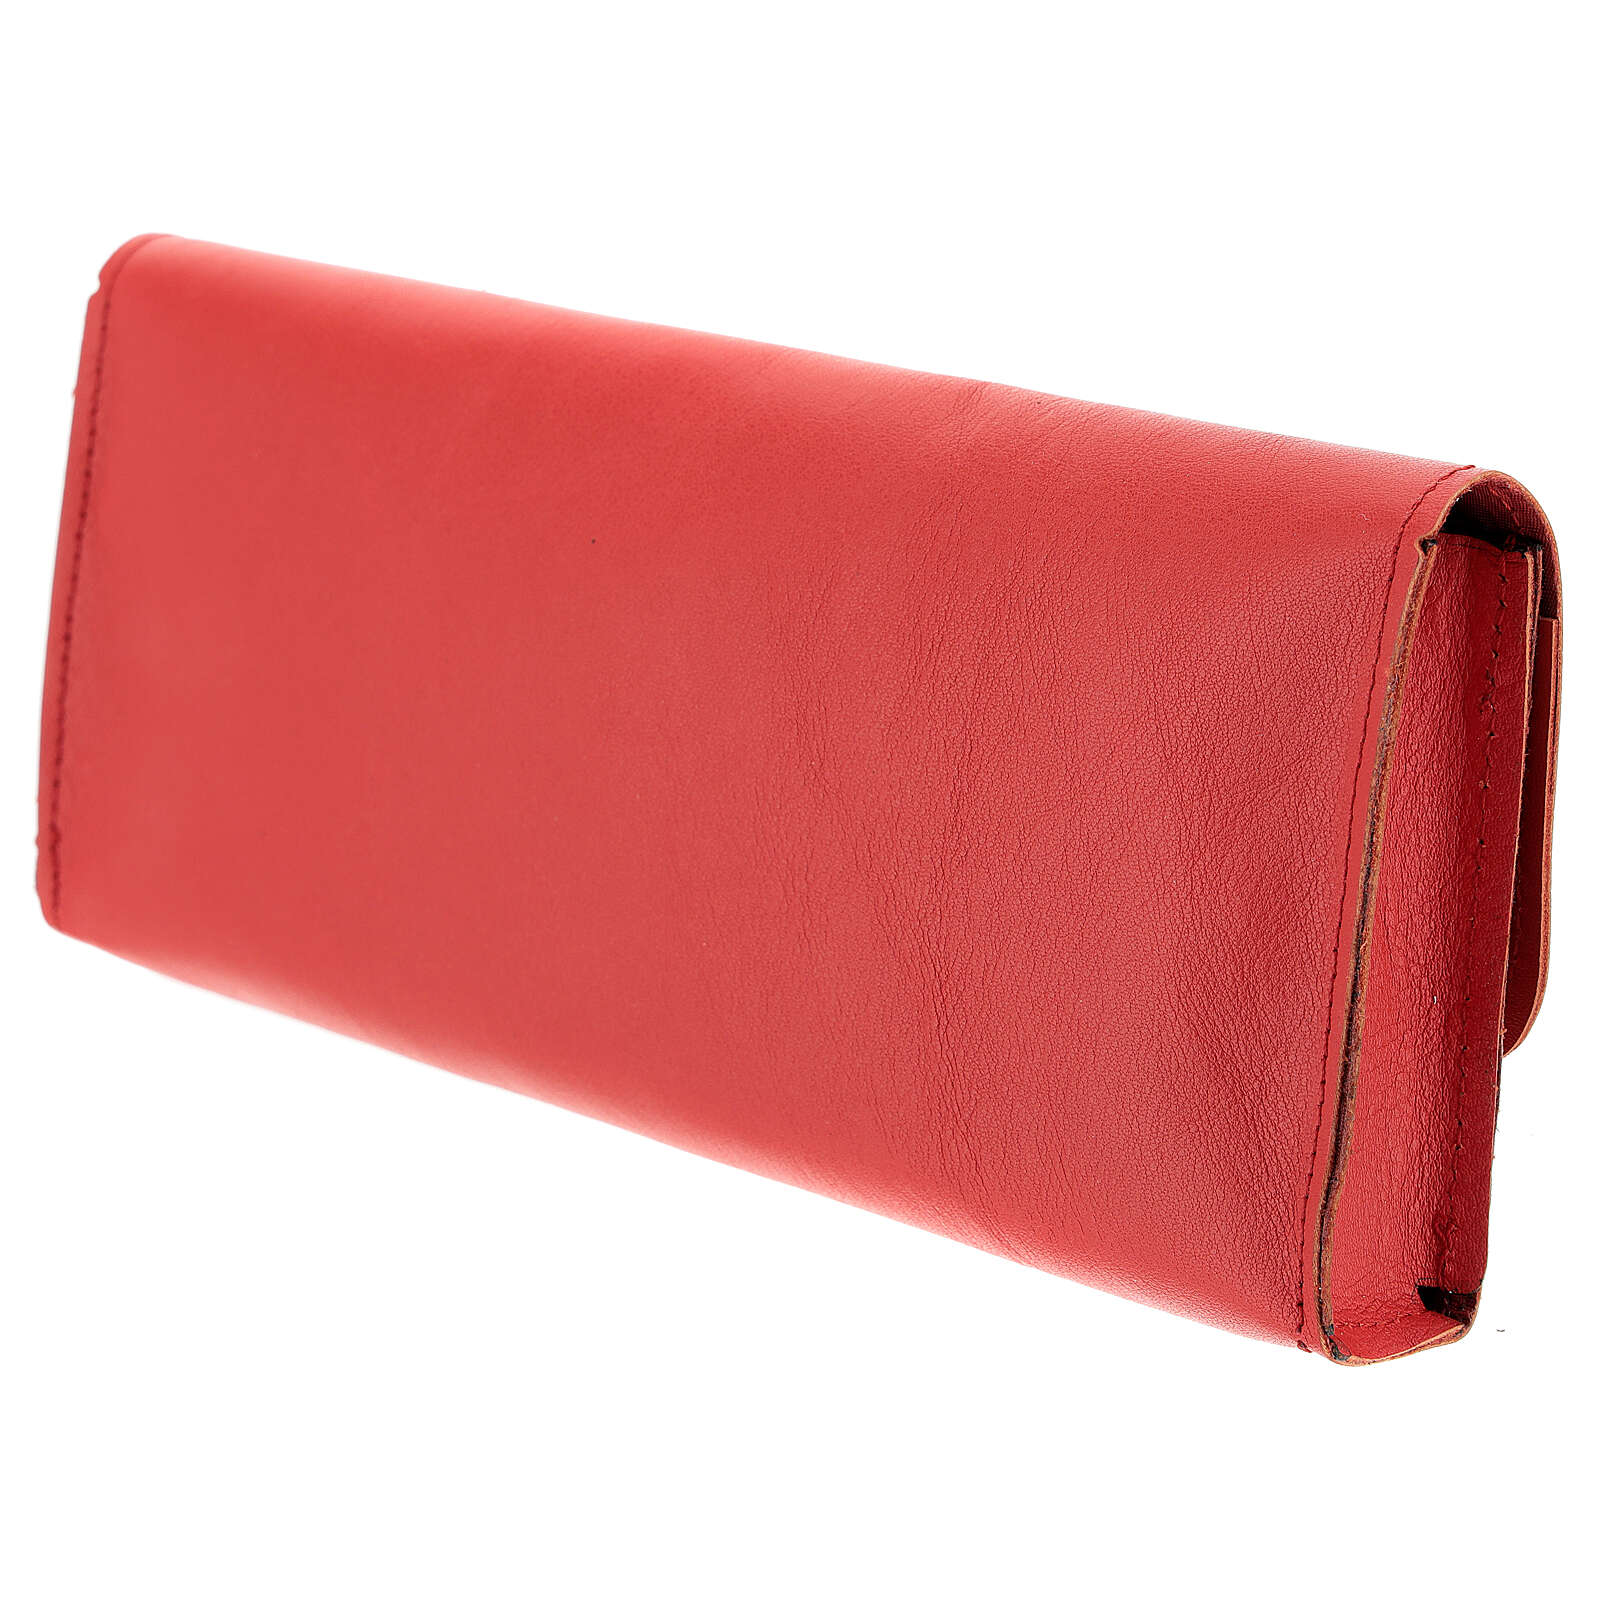 Rectangular bag for stole in red leather 4